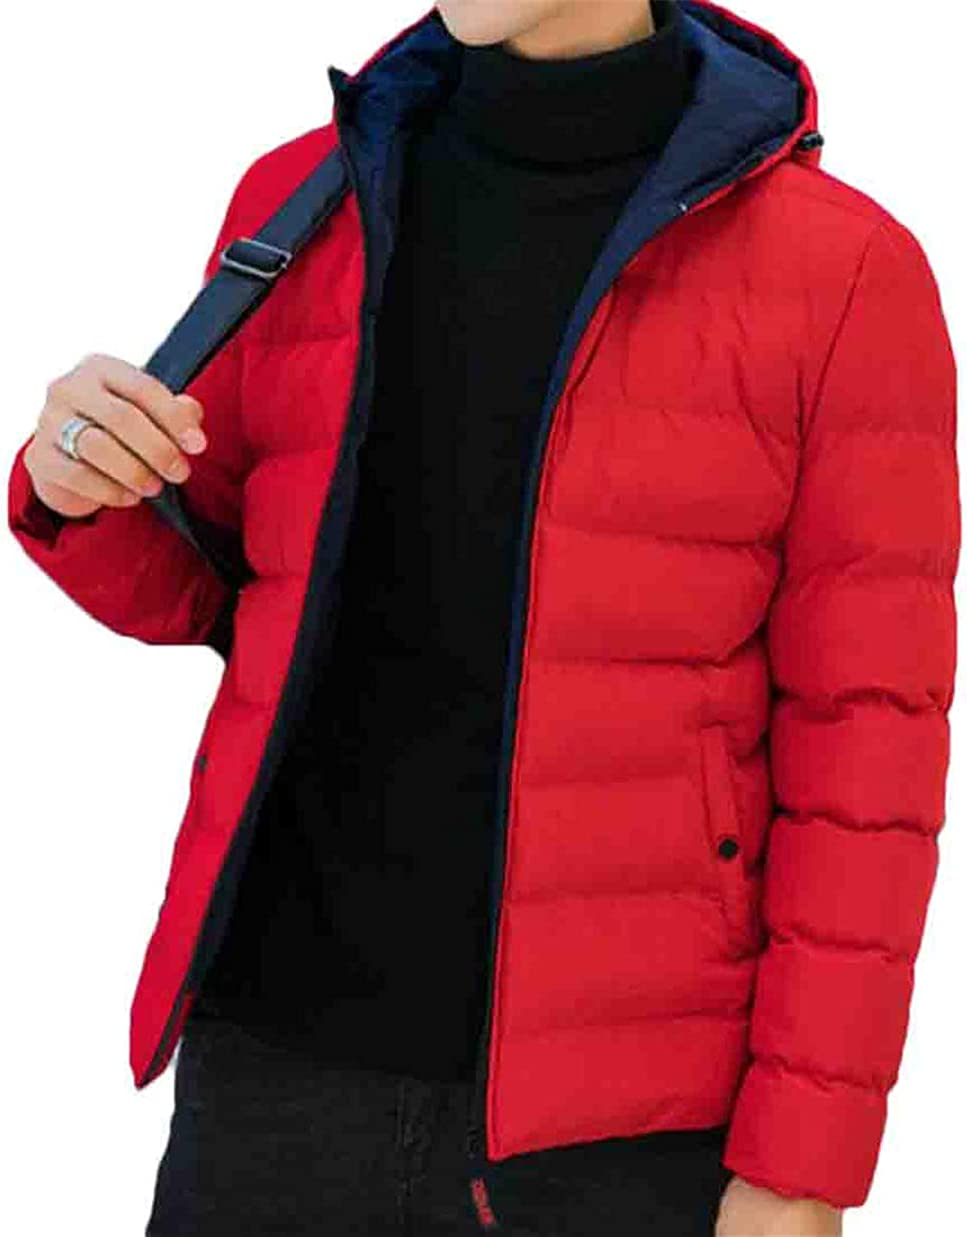 Twcx Mens Hooded Outwear Zip-Up Solid Quilted Padded Casual Thicken Winter Down Puffer Jacket